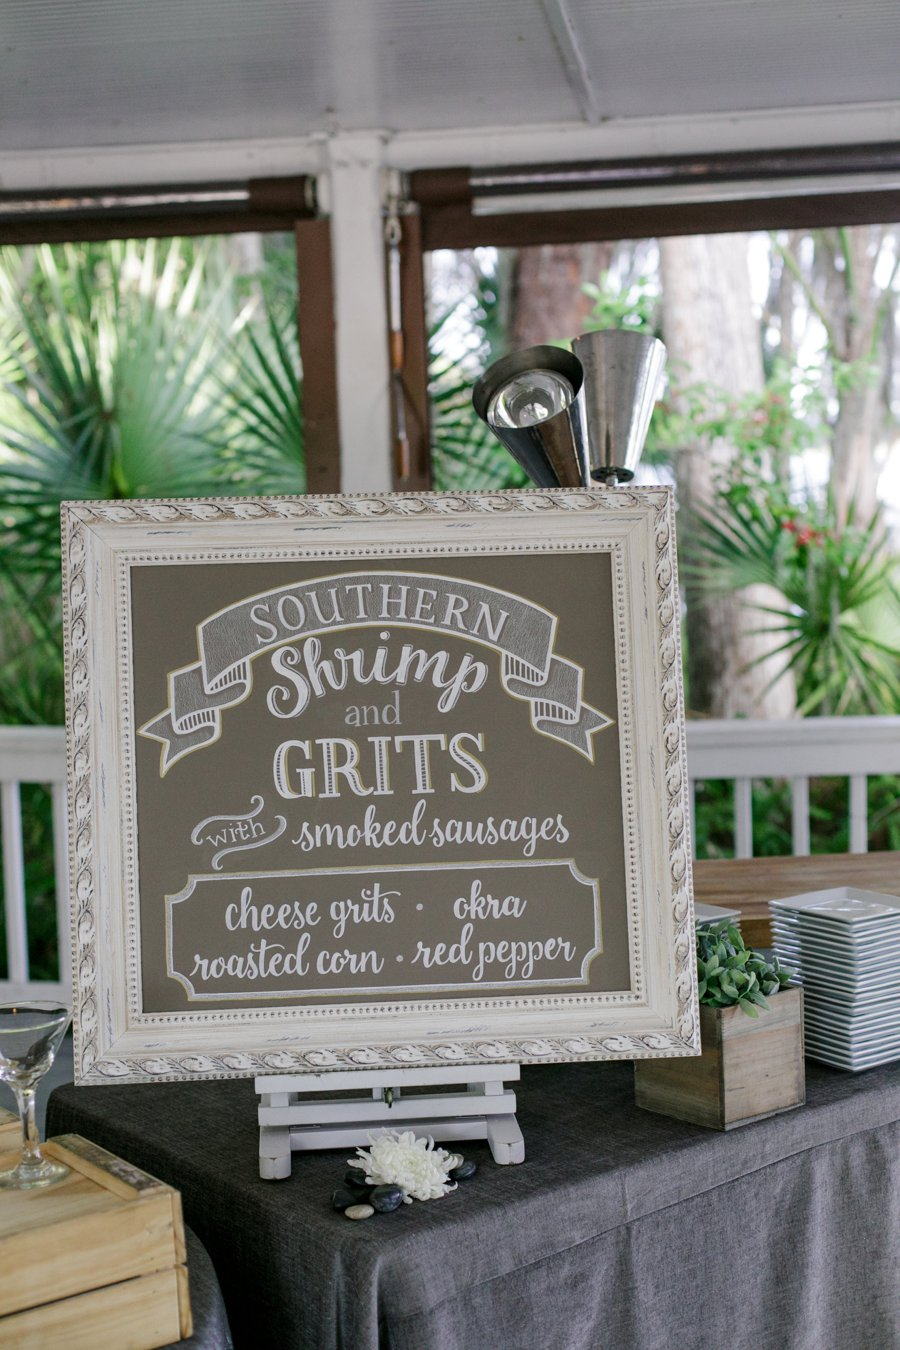 Lavender & Green Lakefront Central Florida Wedding via TheELD.com